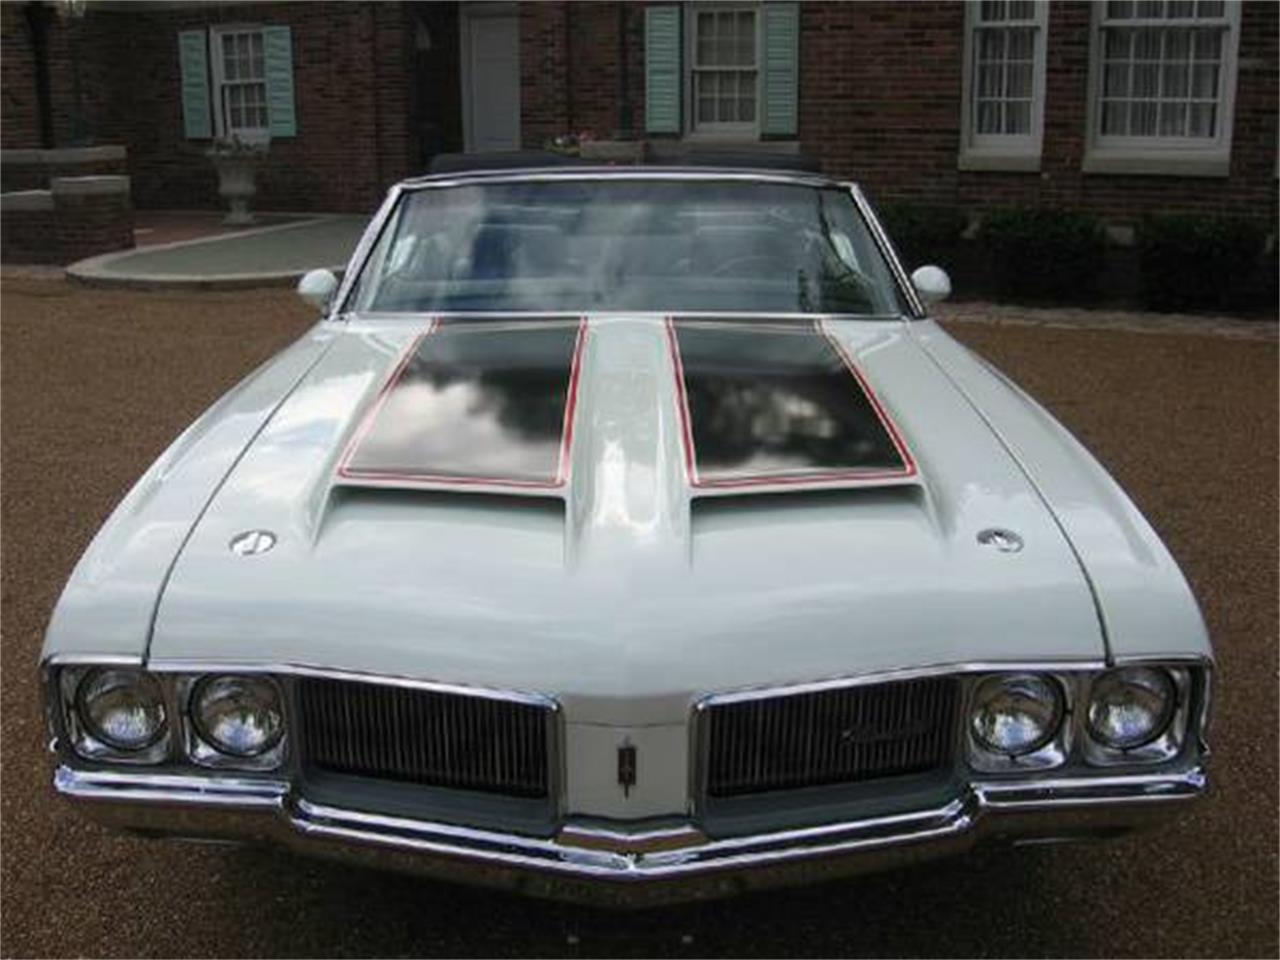 Large Picture of Classic '70 Cutlass Supreme located in St. Louis Missouri Offered by a Private Seller - E0YT